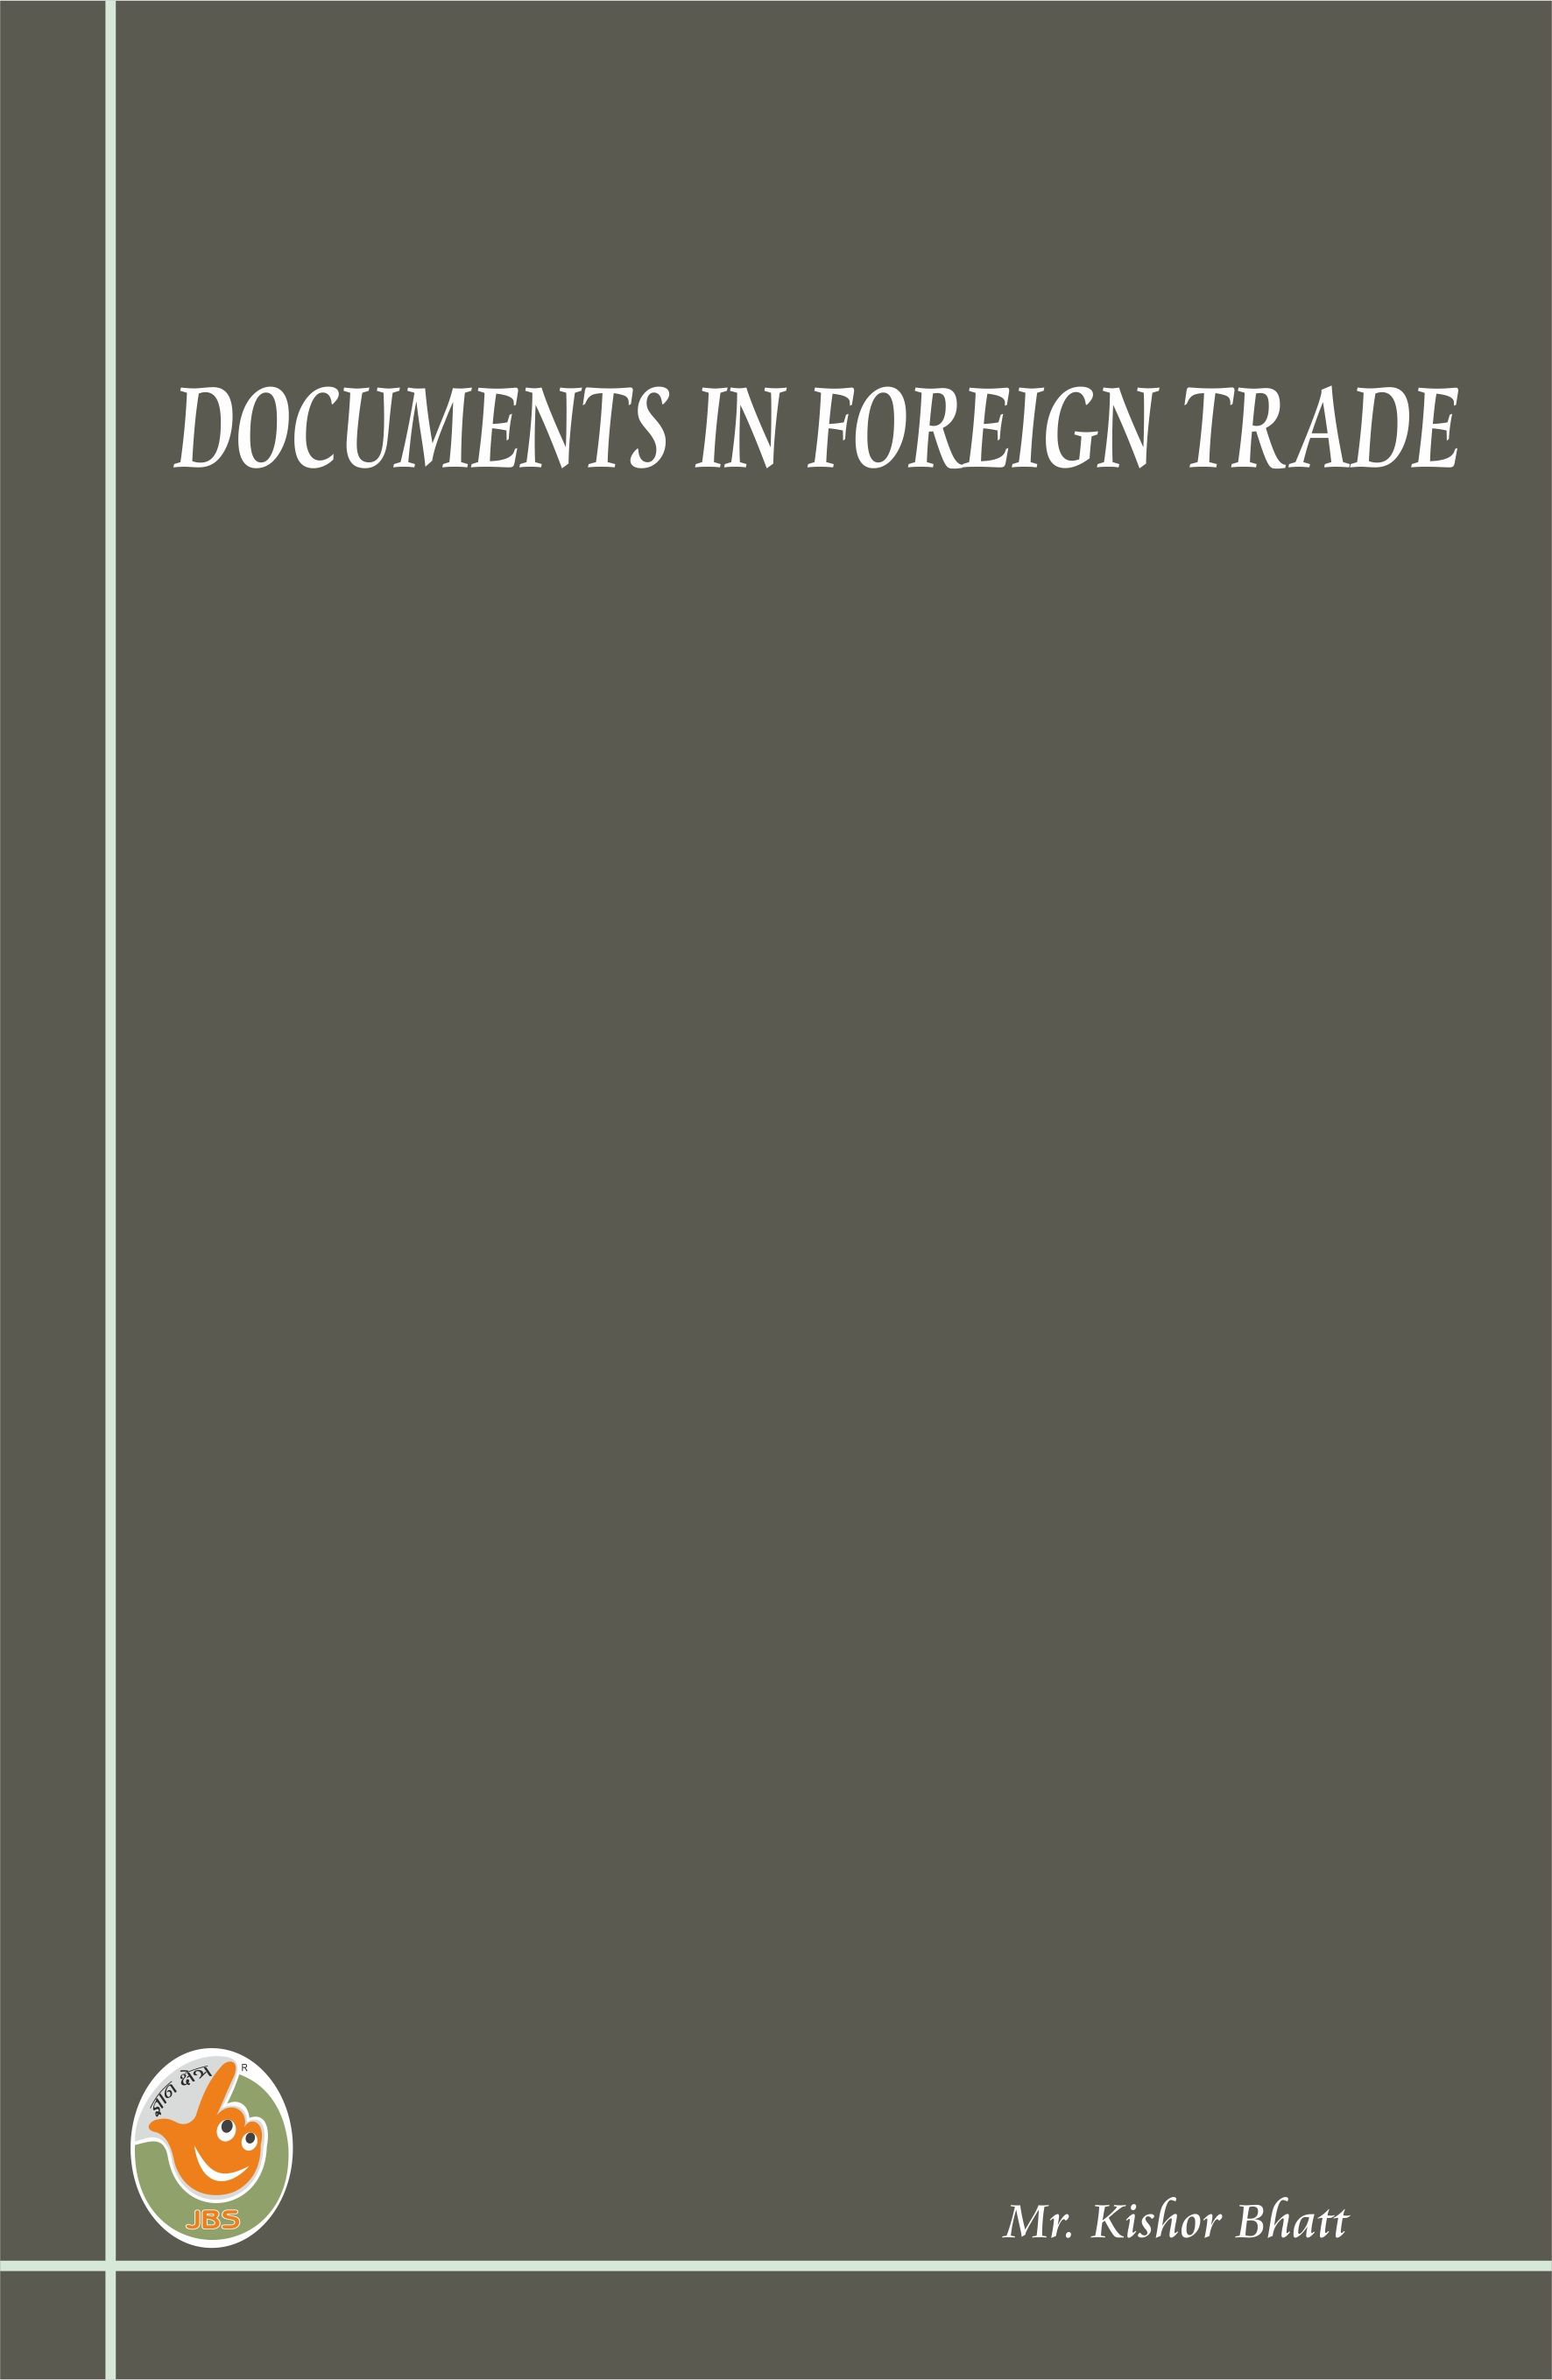 Document in Foreign Trade